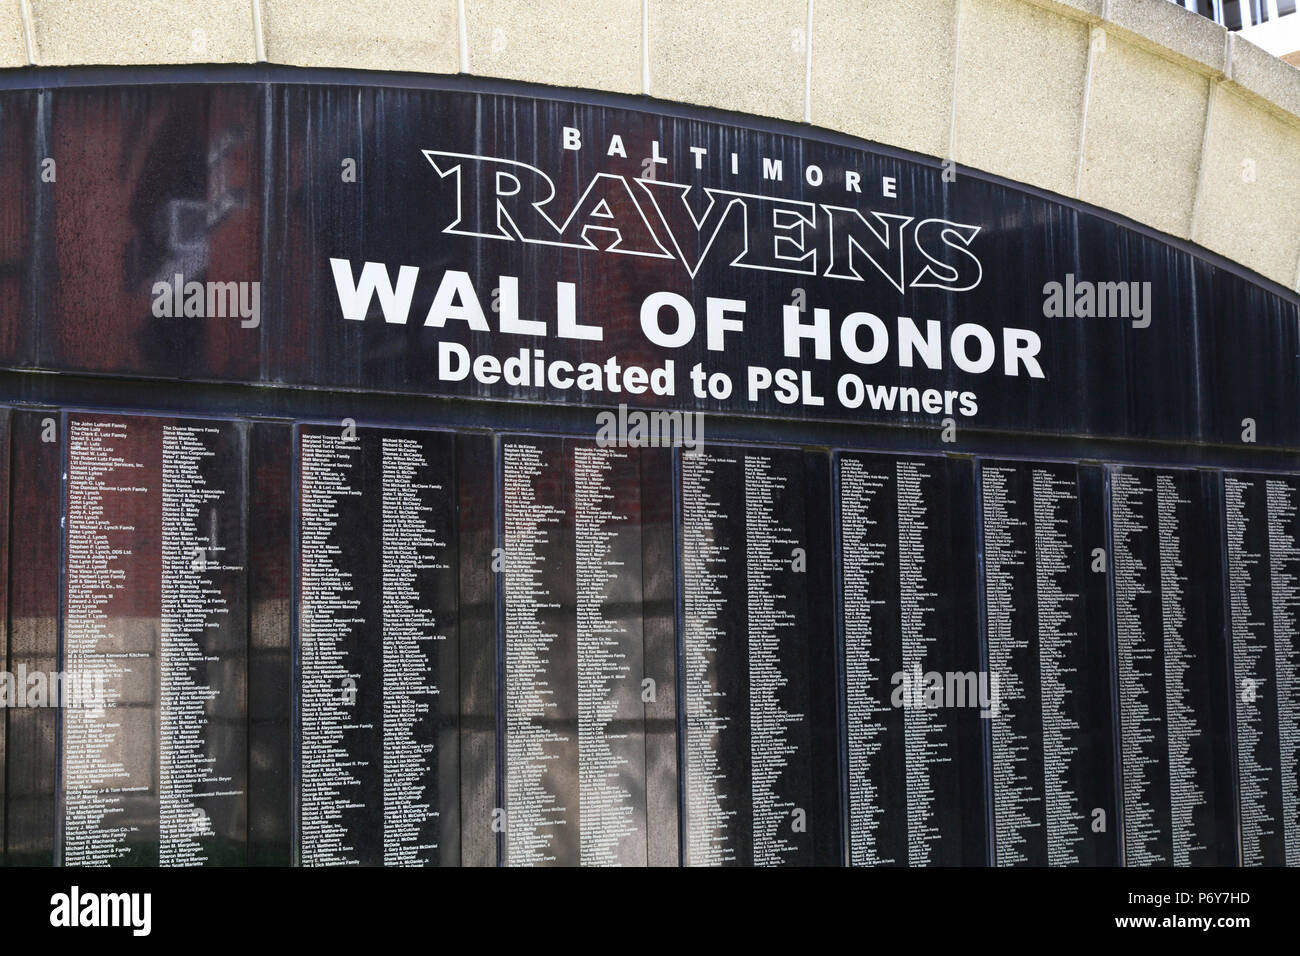 Baltimore Ravens American football team Wall of Honor outside M&T Bank Stadium, Camden Yards, Baltimore, Maryland, USA - Stock Image